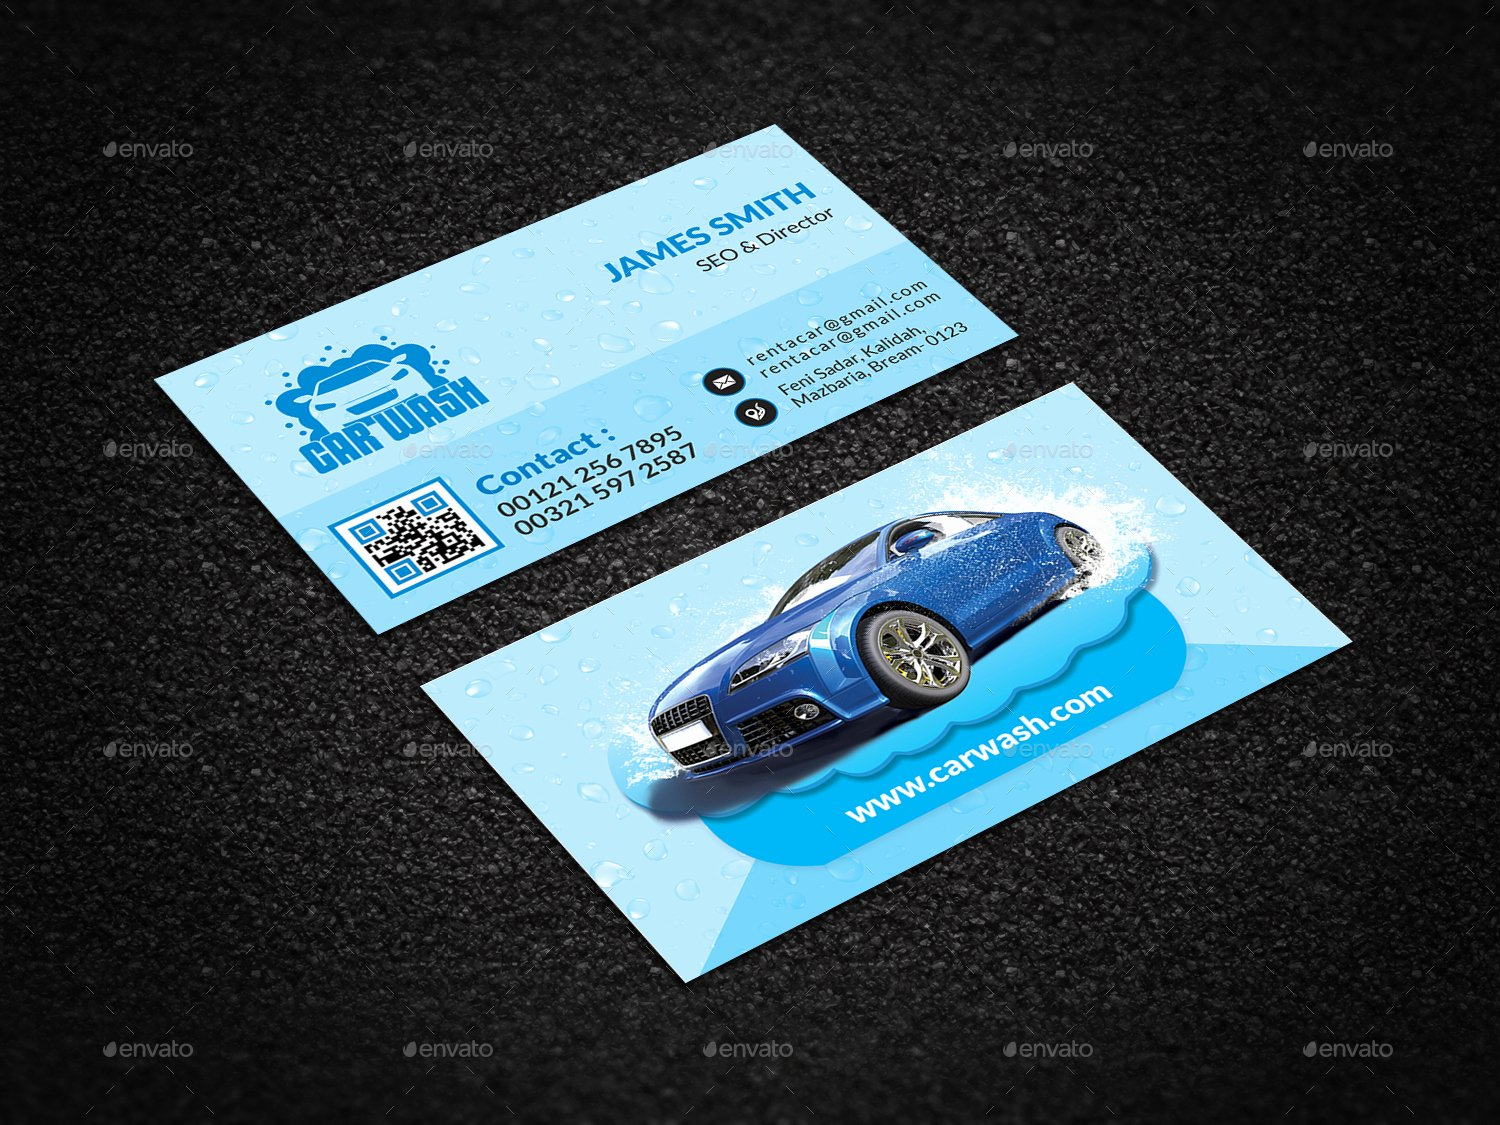 Car Wash Business Cards Awesome Car Wash Business Card by Creative touch